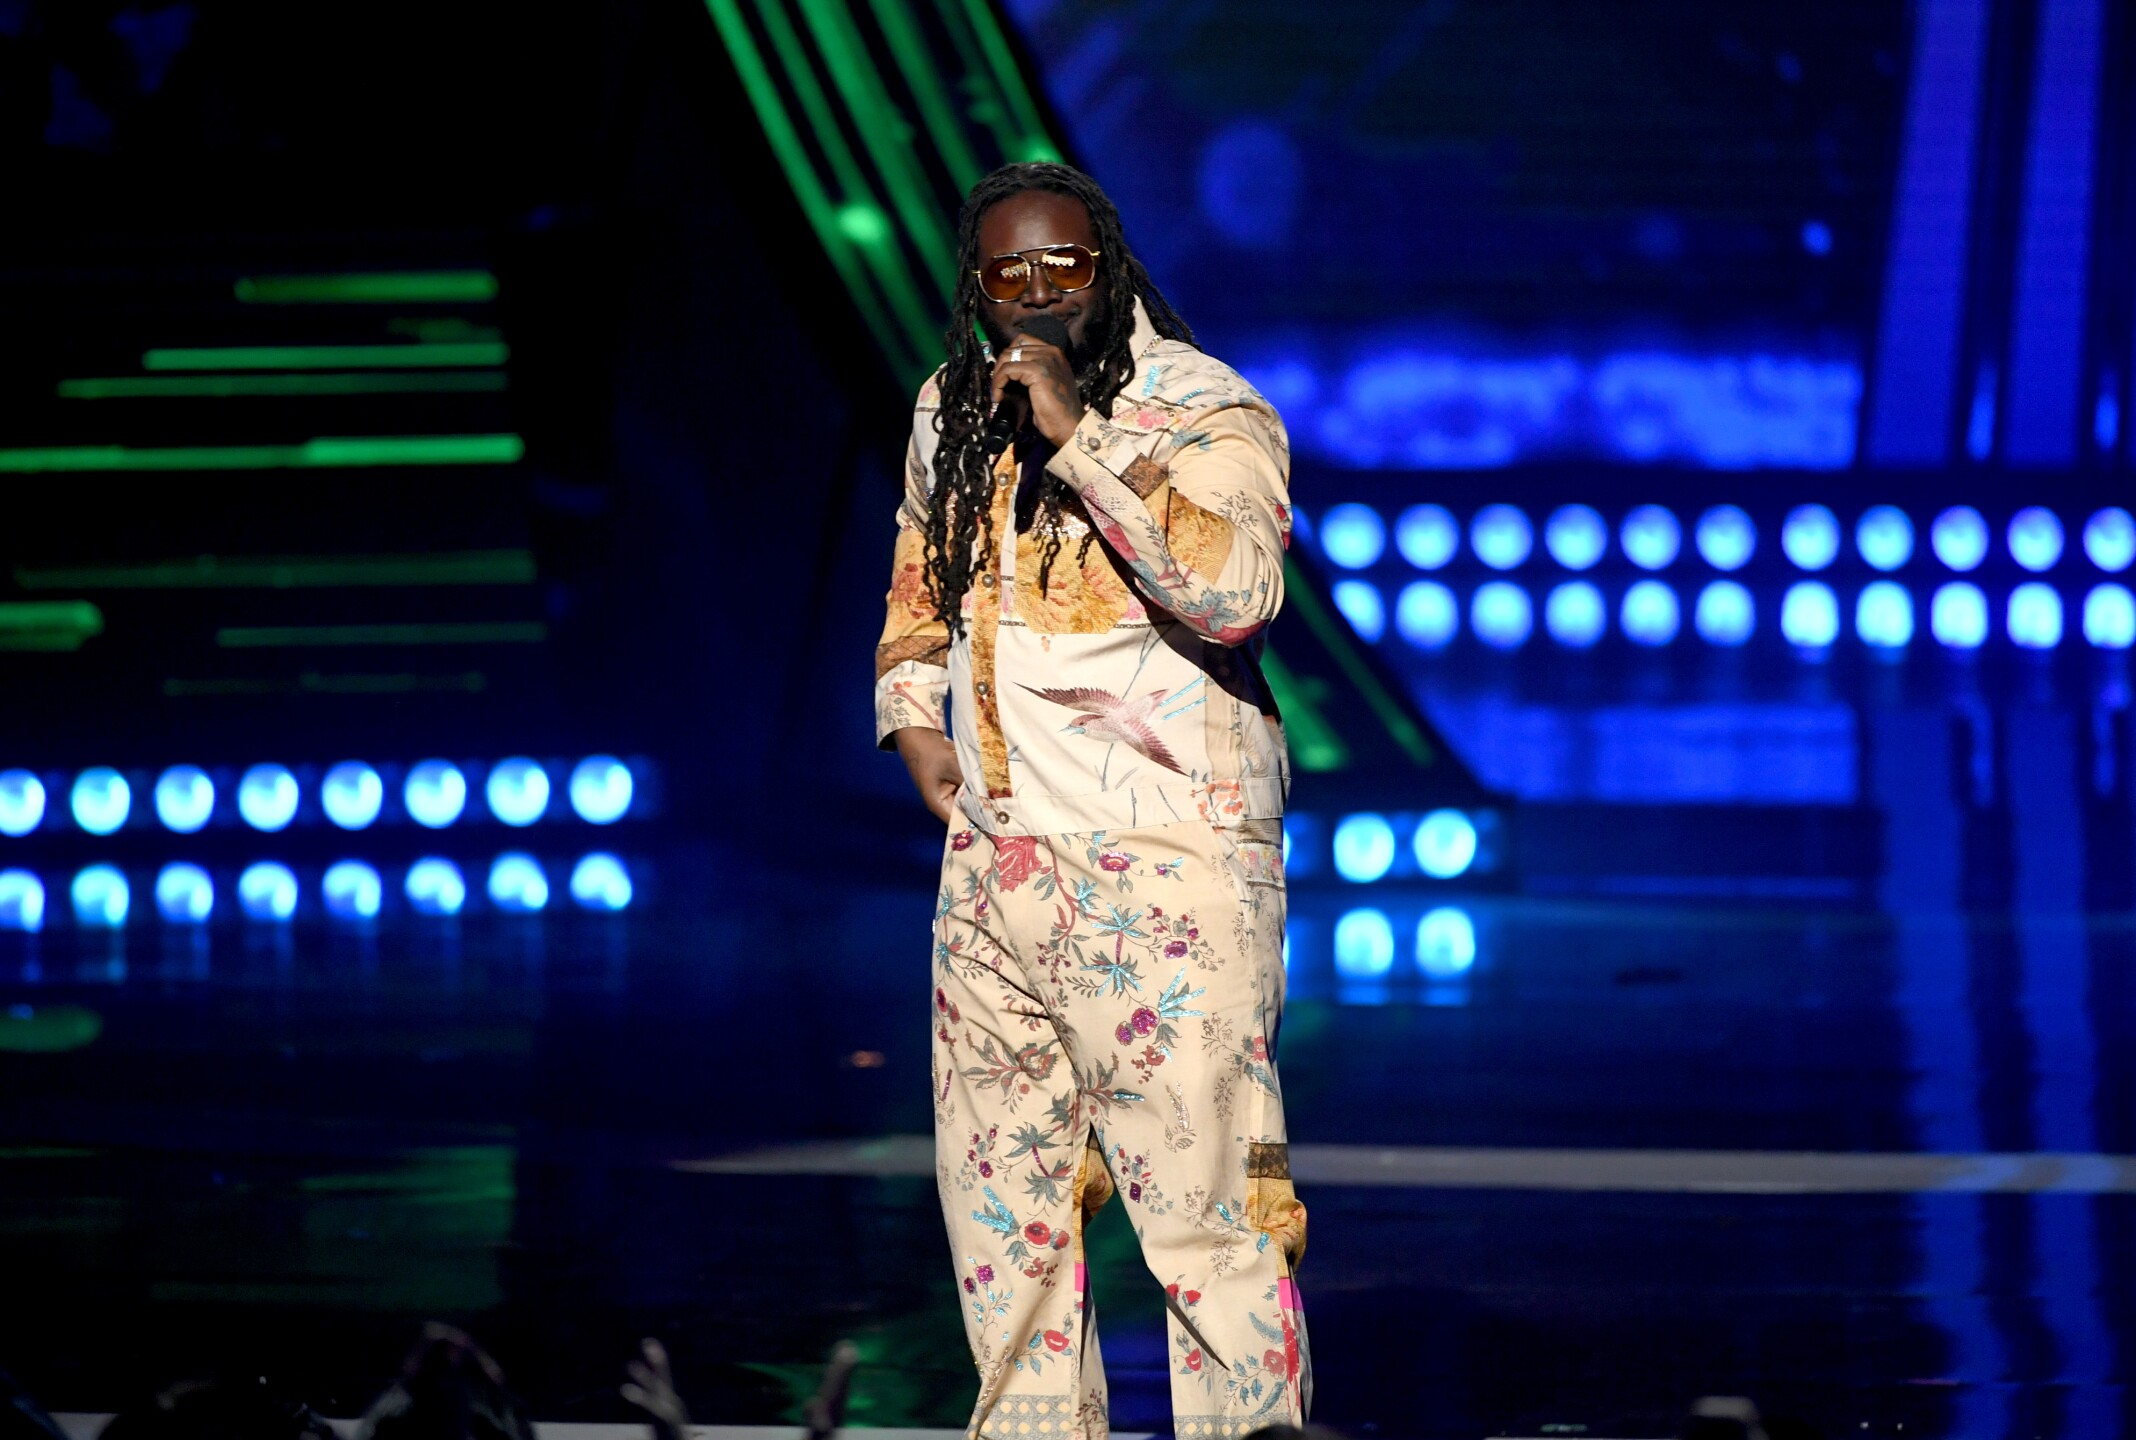 T-Pain to perform at Summerfest 2019.